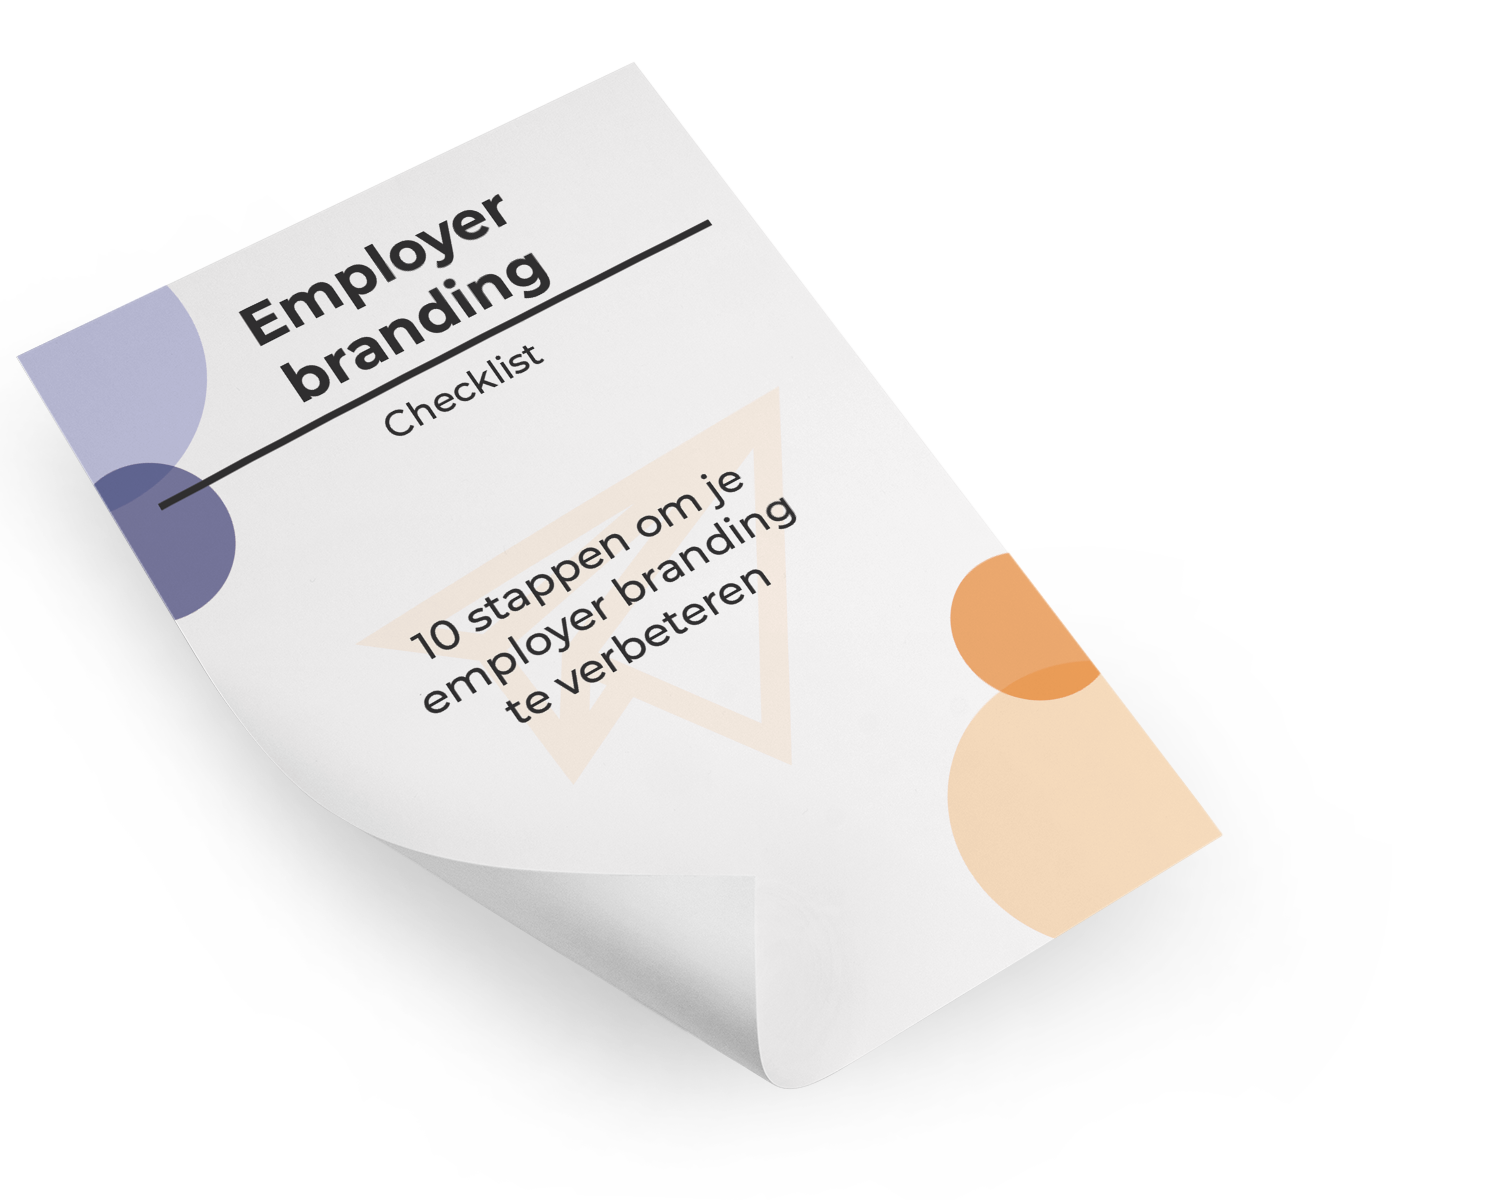 Checklist Employer branding-3